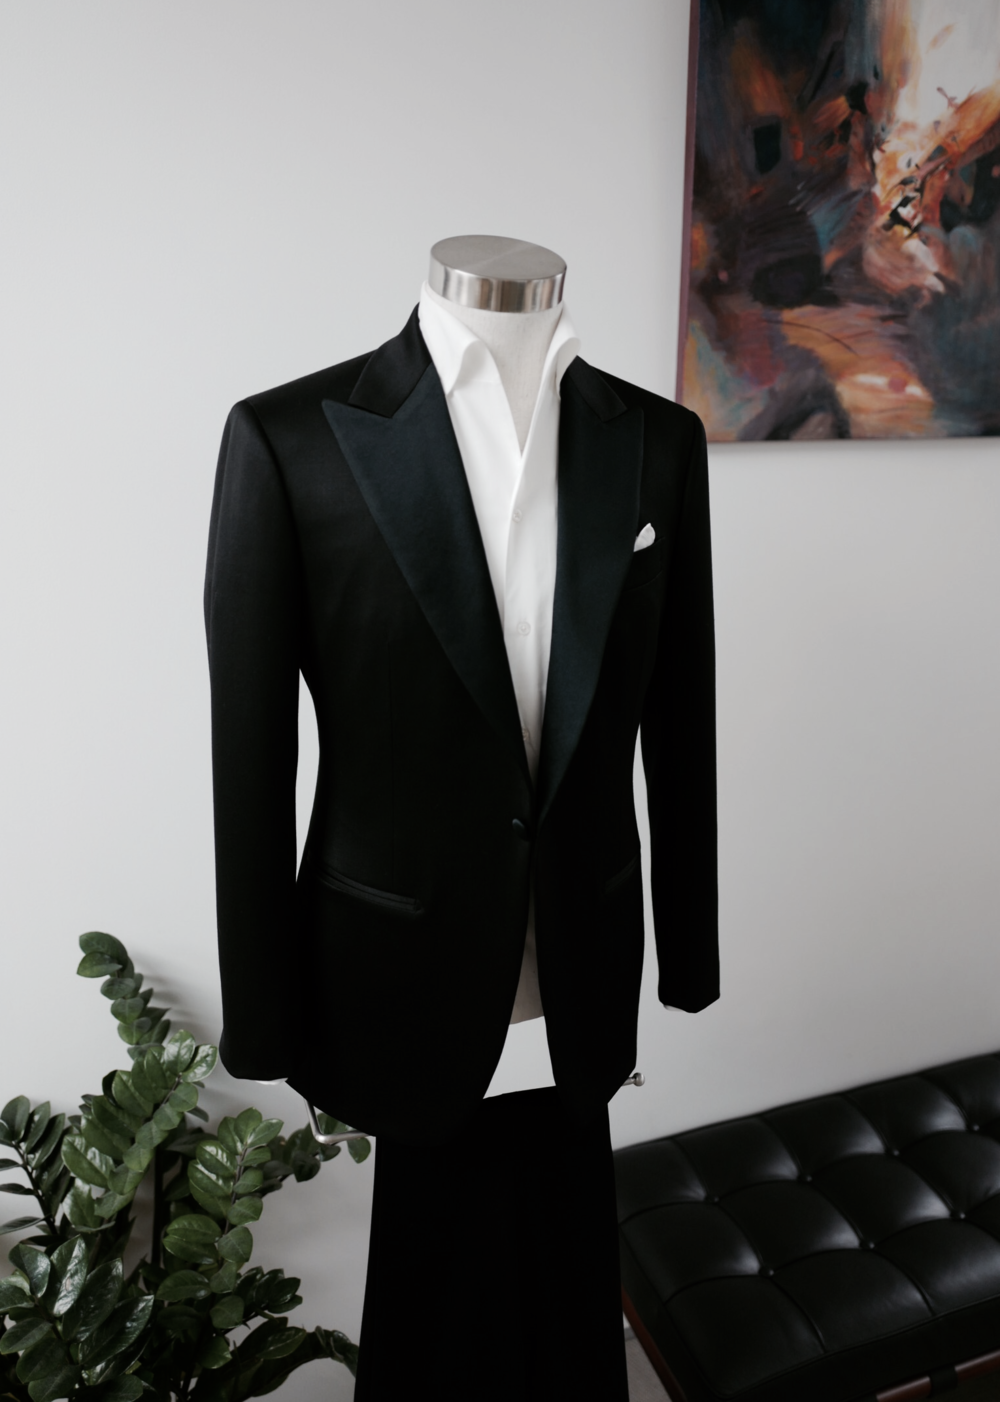 Timelesss Evening Wear    (Available in Bespoke & Made to Measure)